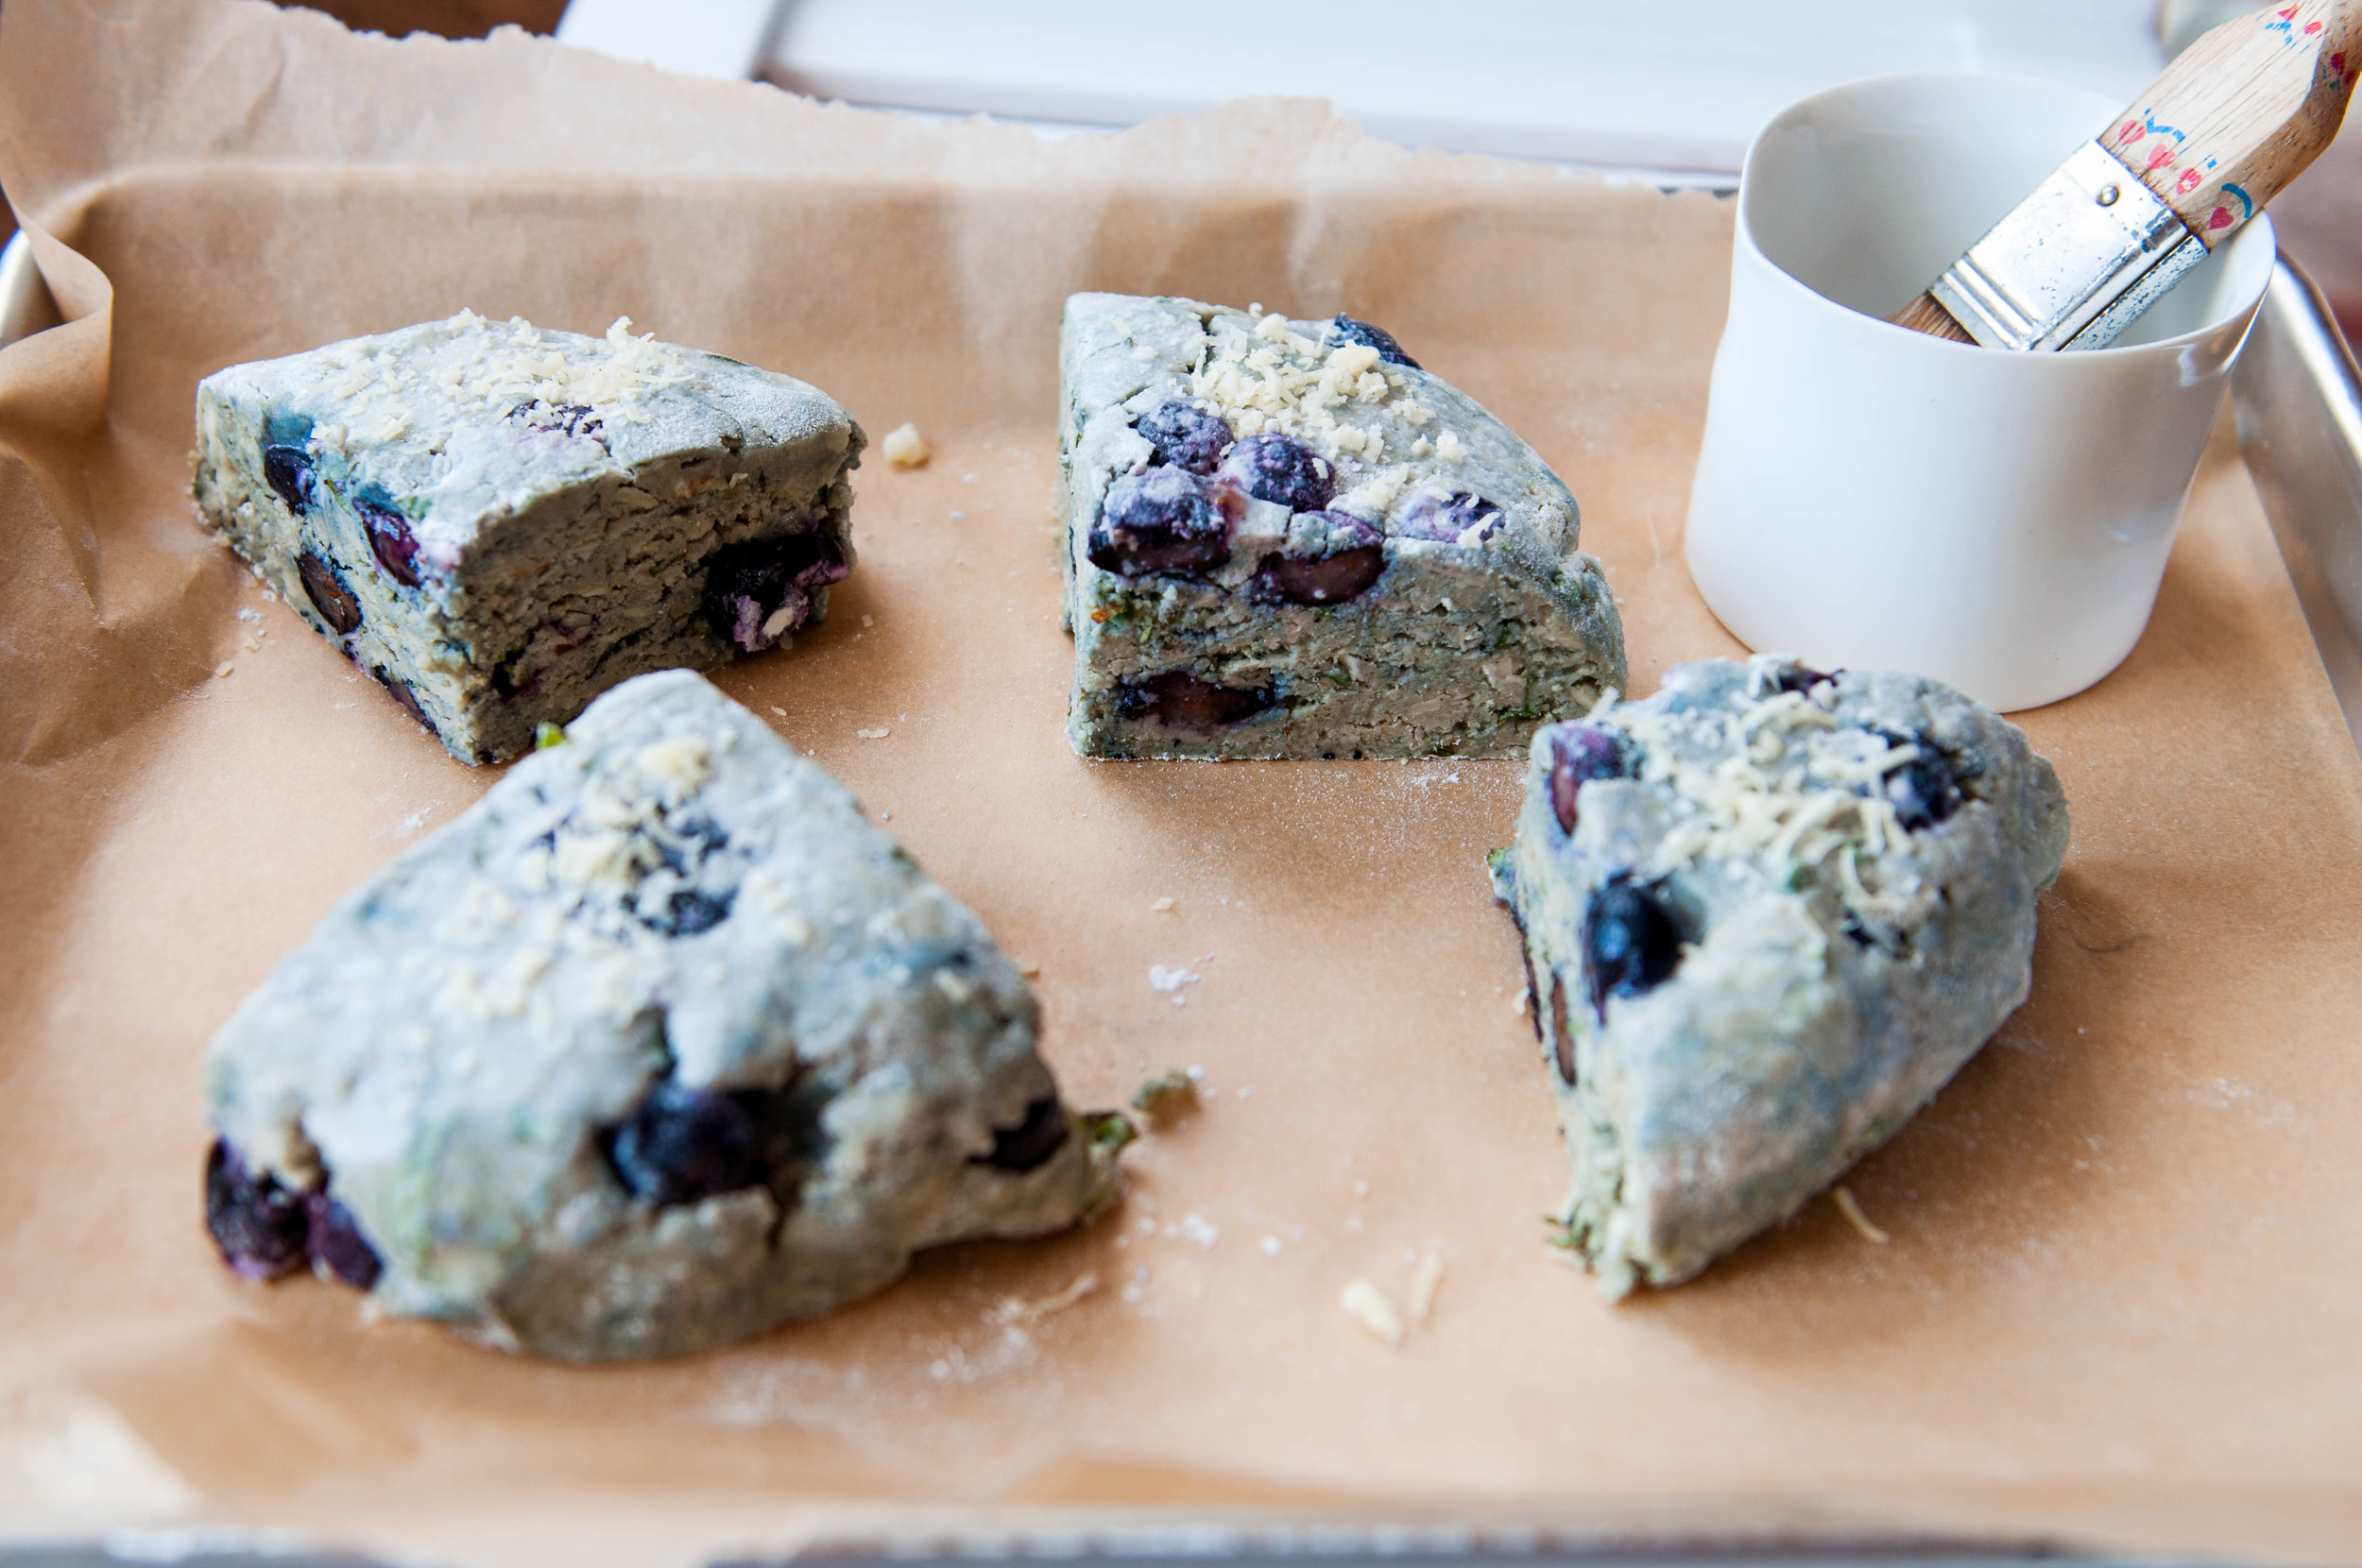 Blueberry, Basil and Cheddar Savory Gluten Free Scones